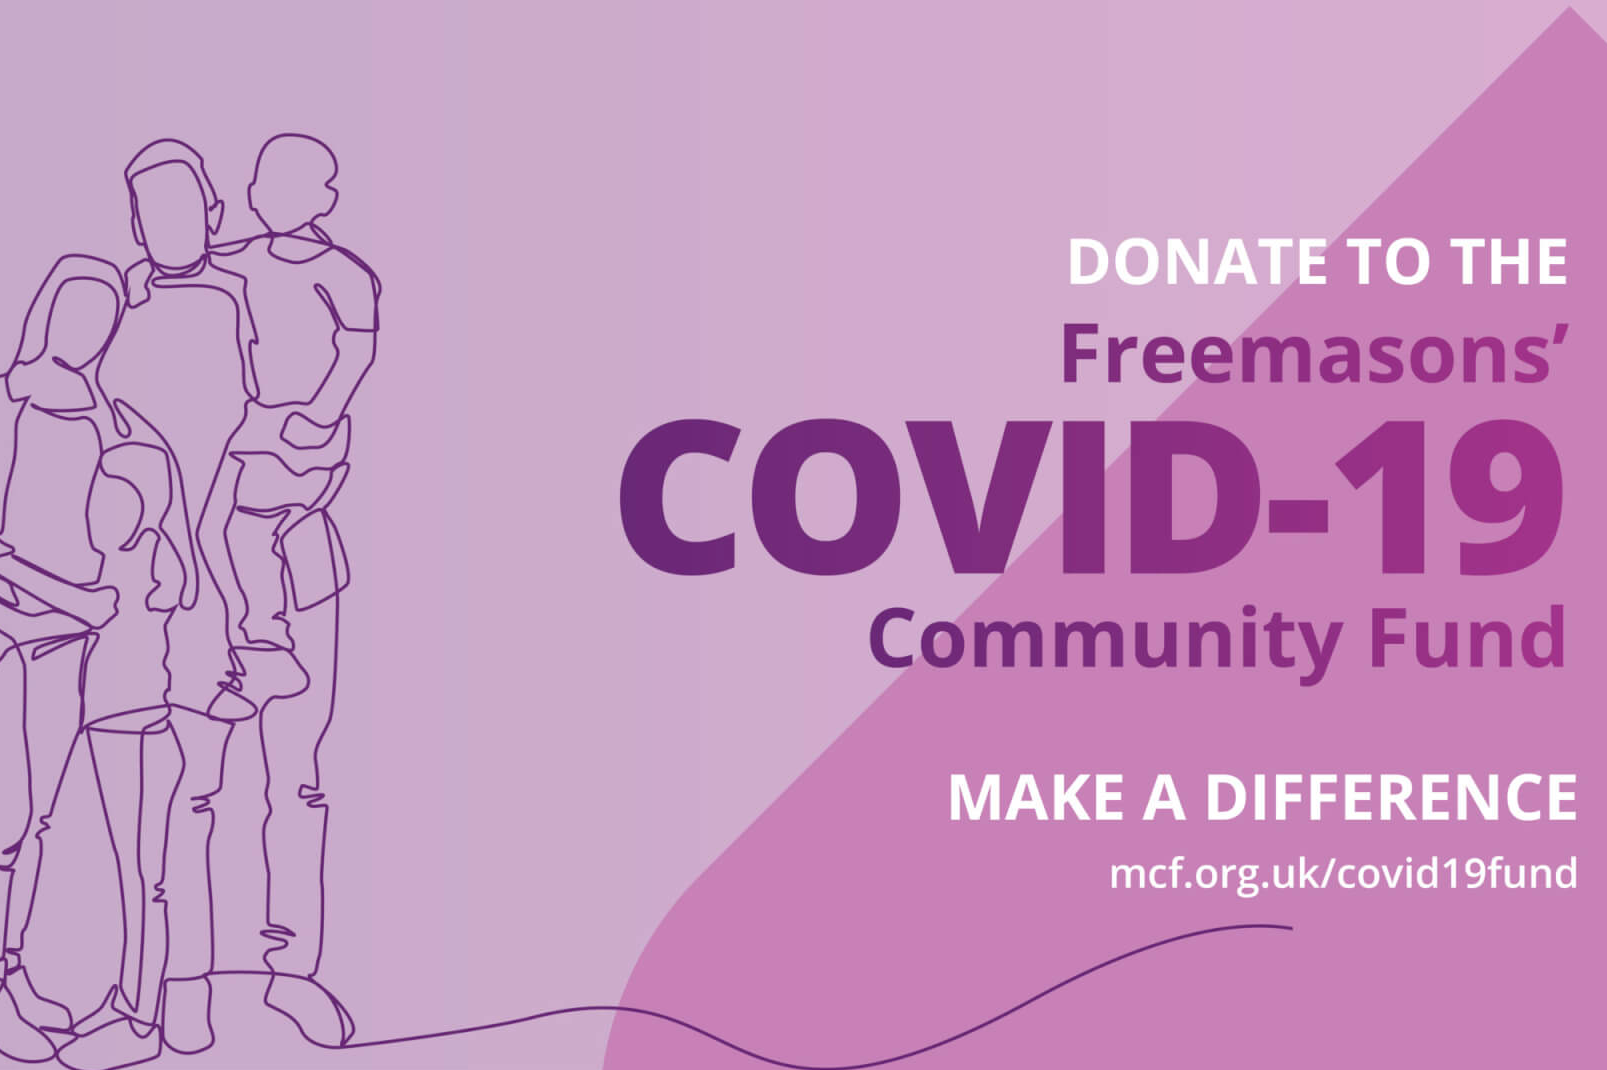 COVID-19 Community Fund Stands at £833,987